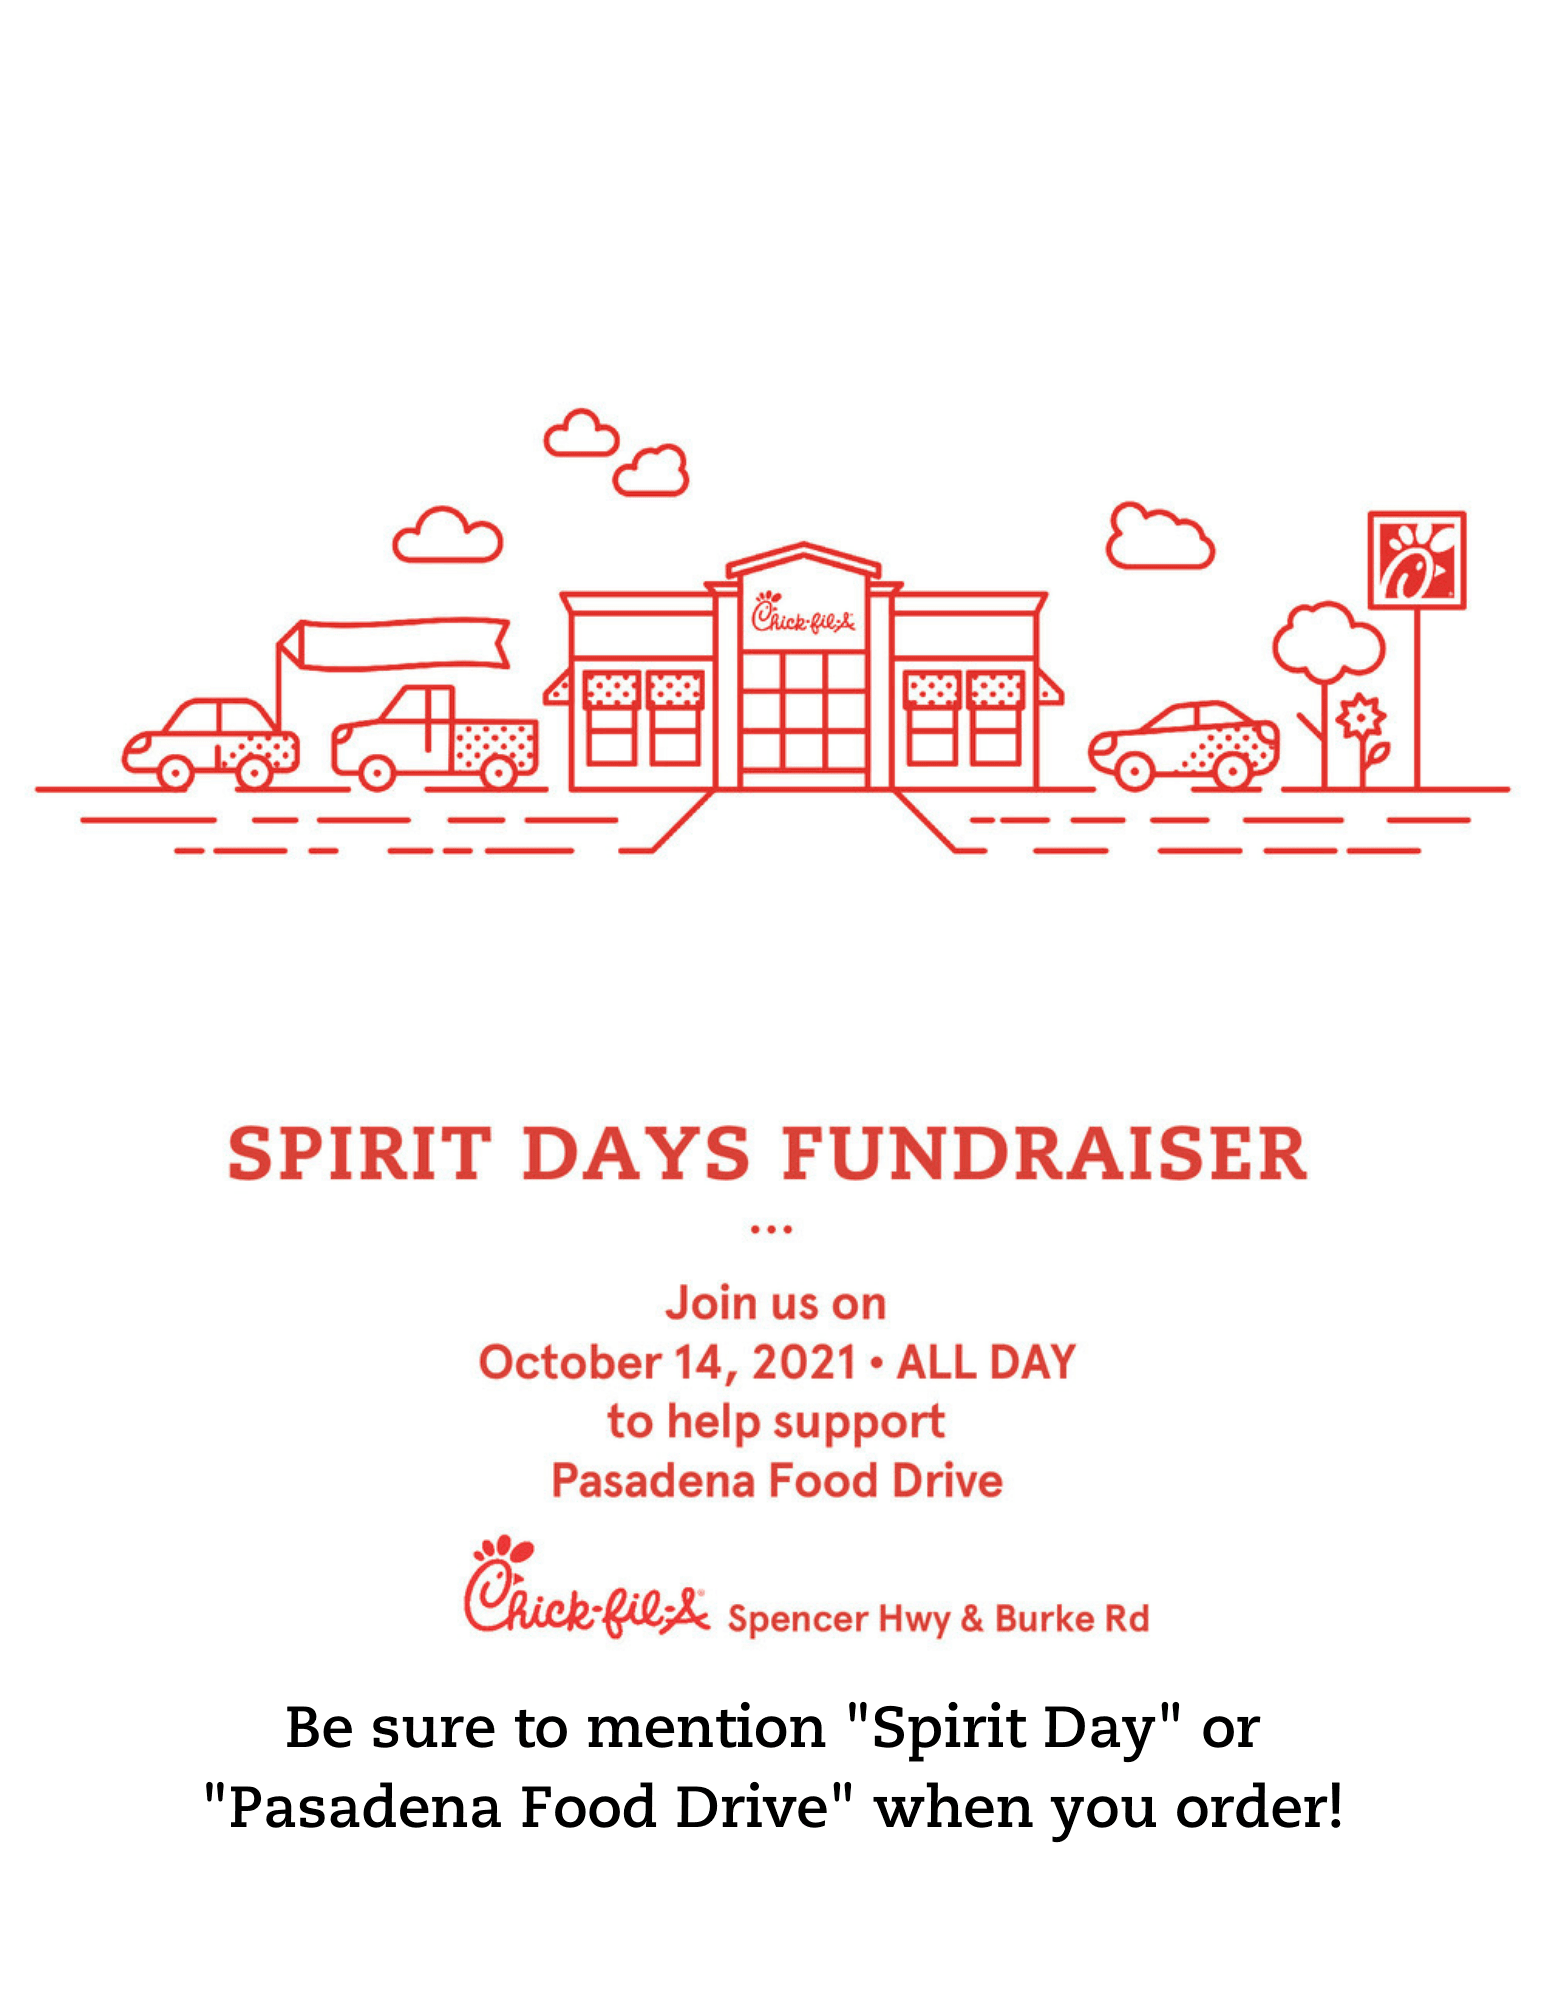 Spencer Chick-fil-A fundraiser for the Pasadena Food Drive